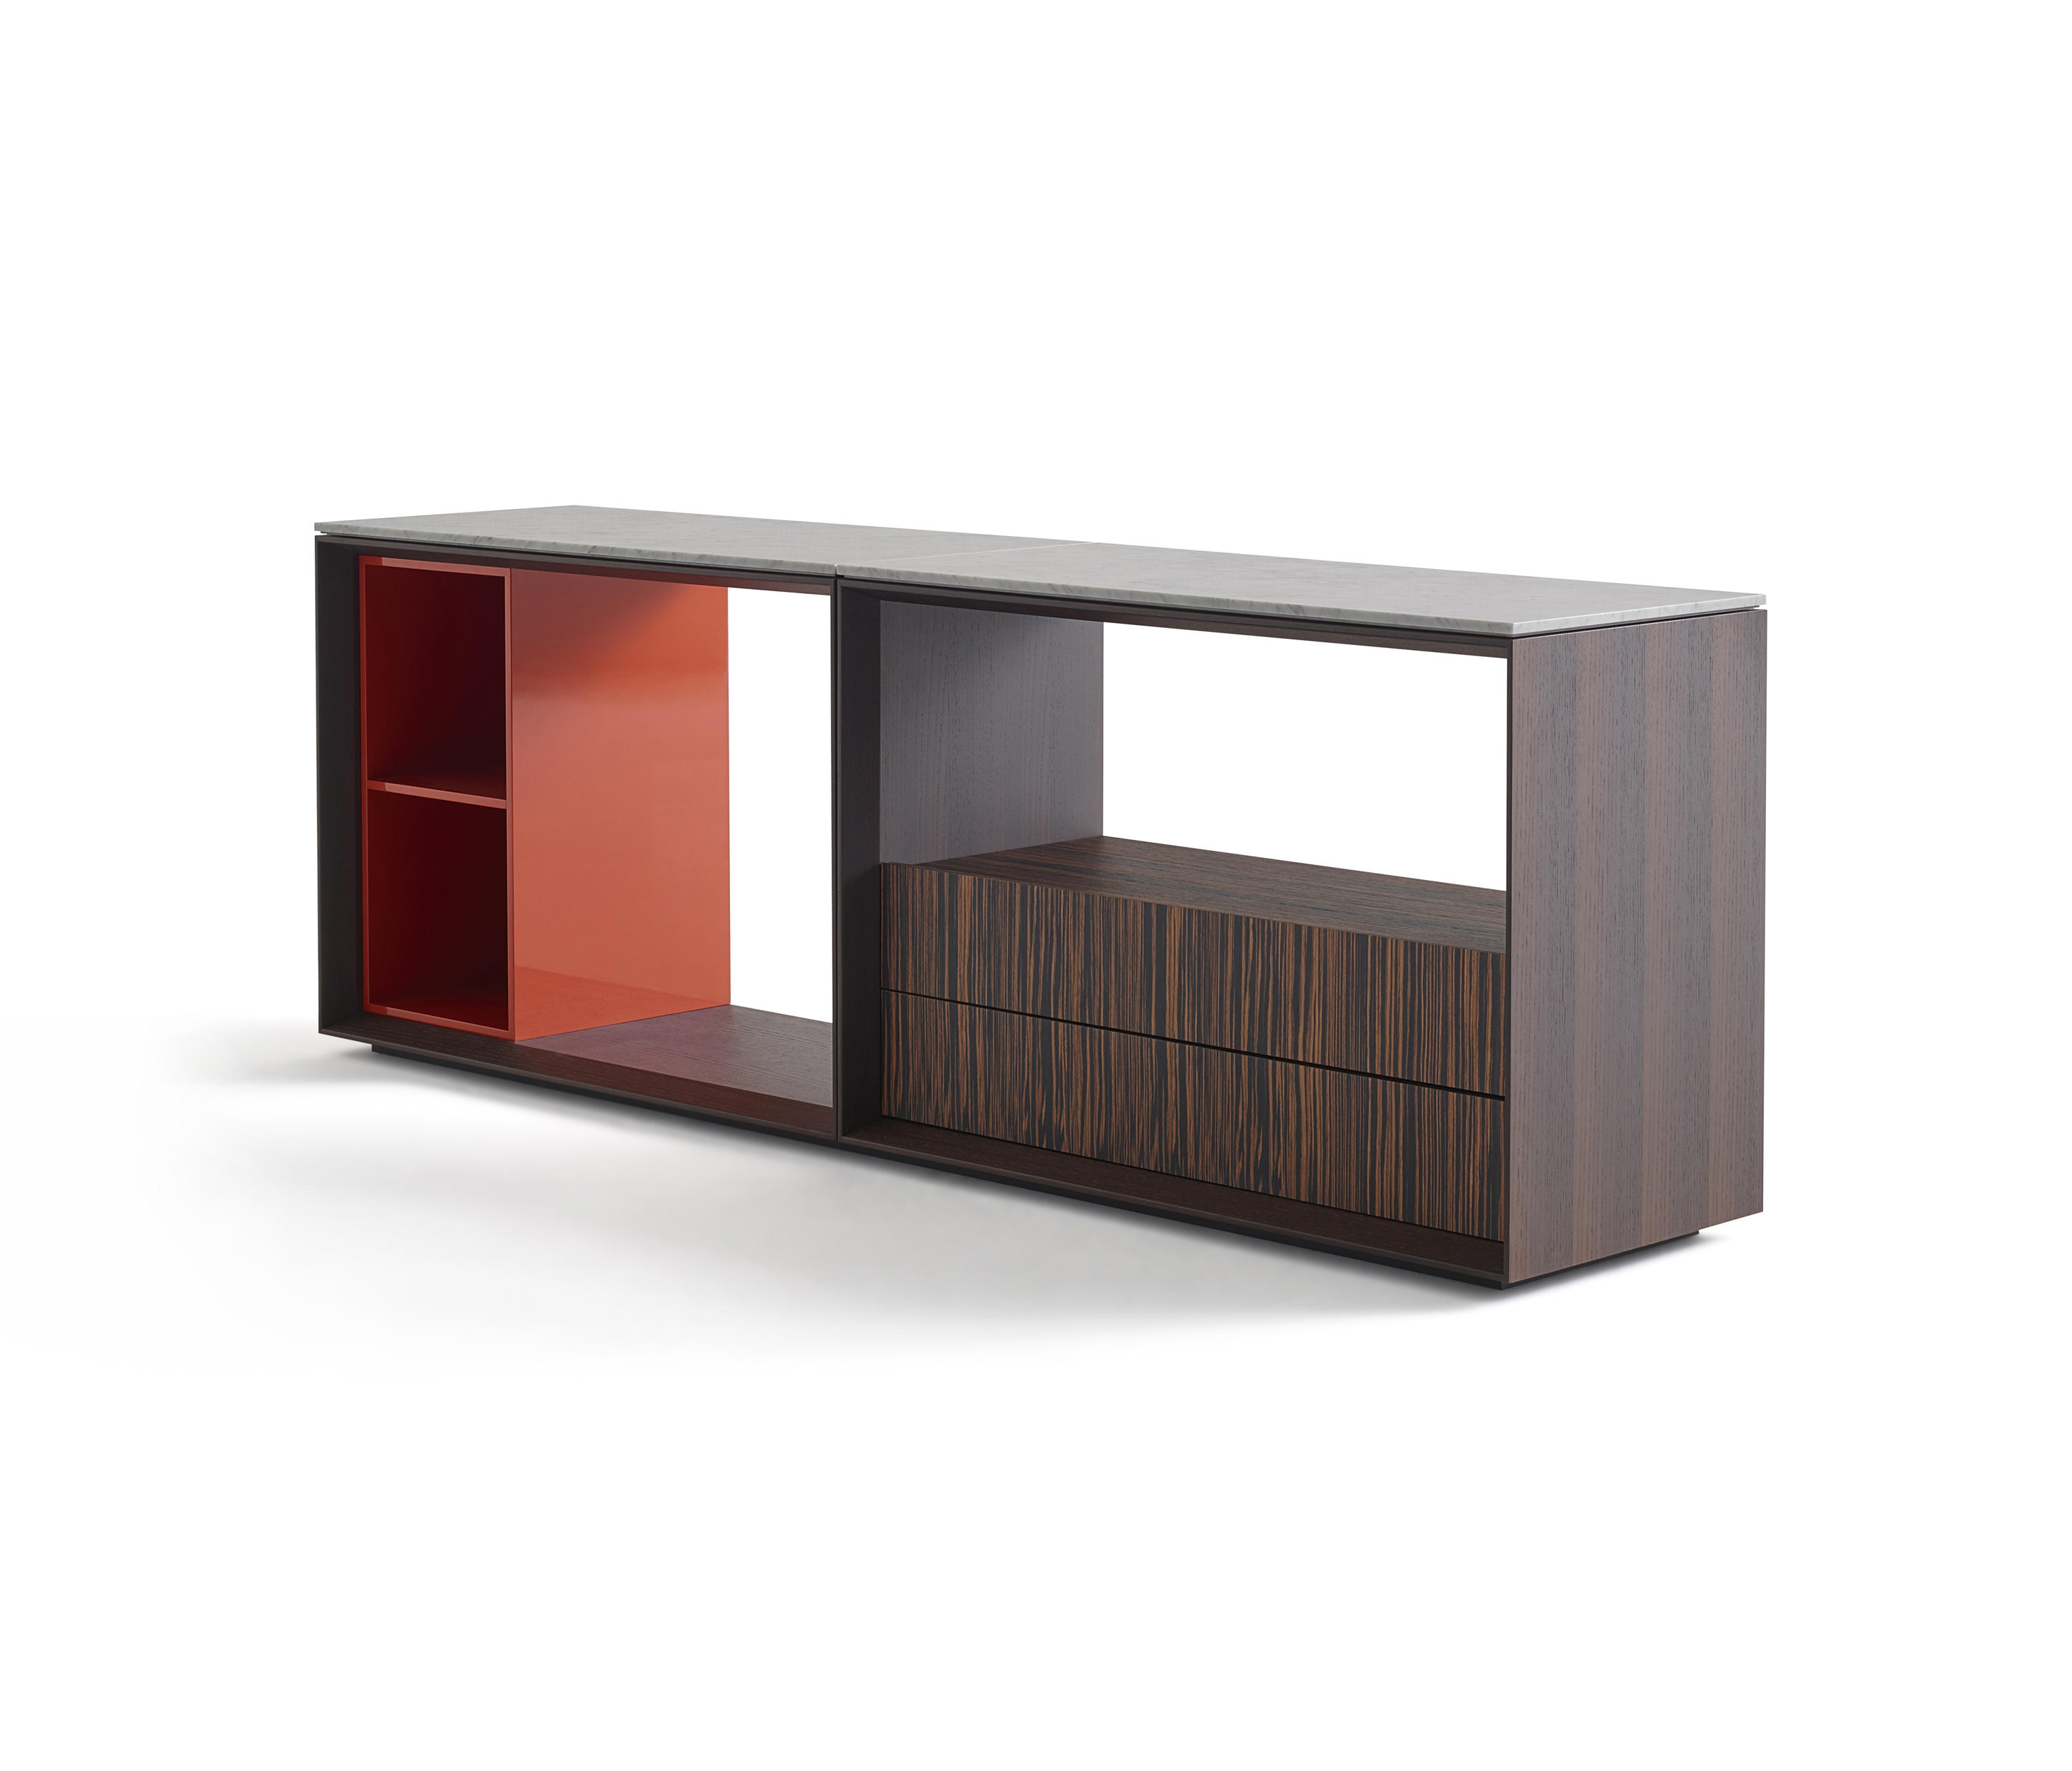 Piero Lissoni Sofa Price Matrioska Credenza - Sideboards From Knoll International